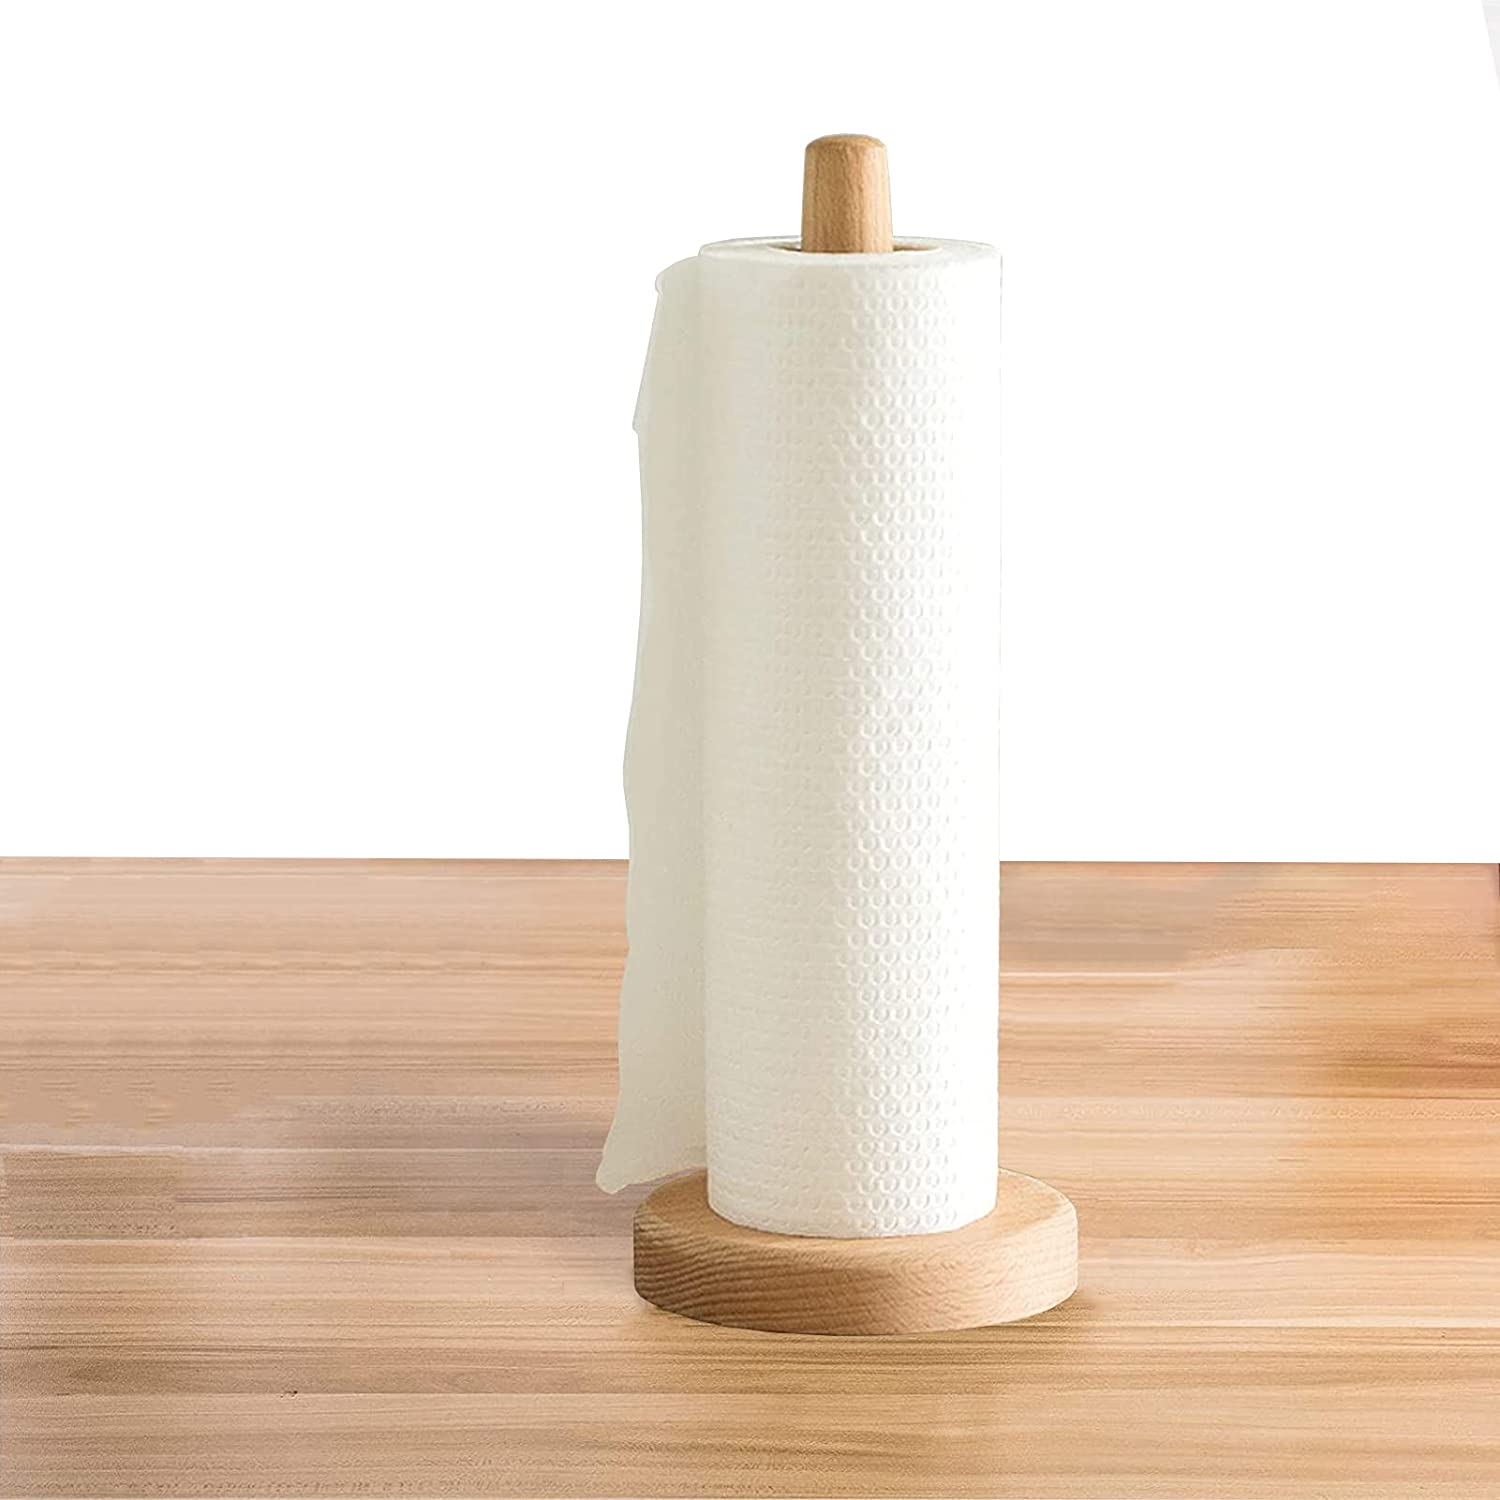 Yistao Wood Popular popular Wholesale Paper Towel Wooden Counte Holder